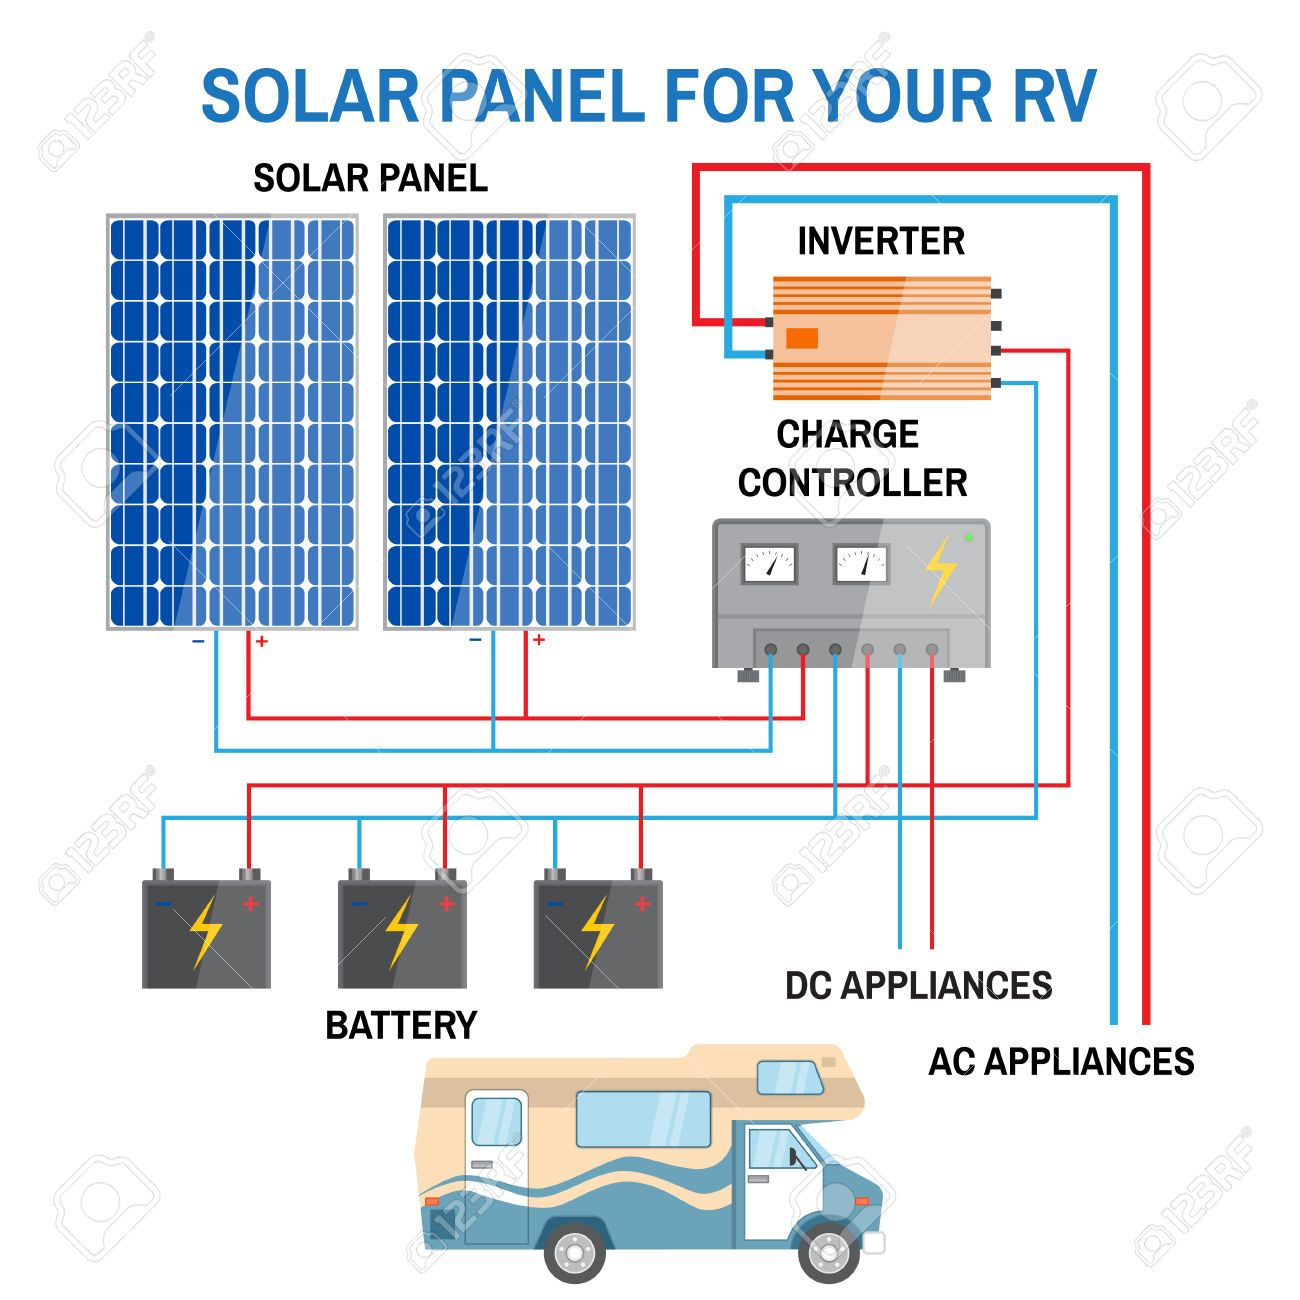 Solar Power System Wiring Diagram Roc Grp Org Branchement Electrique Electrique